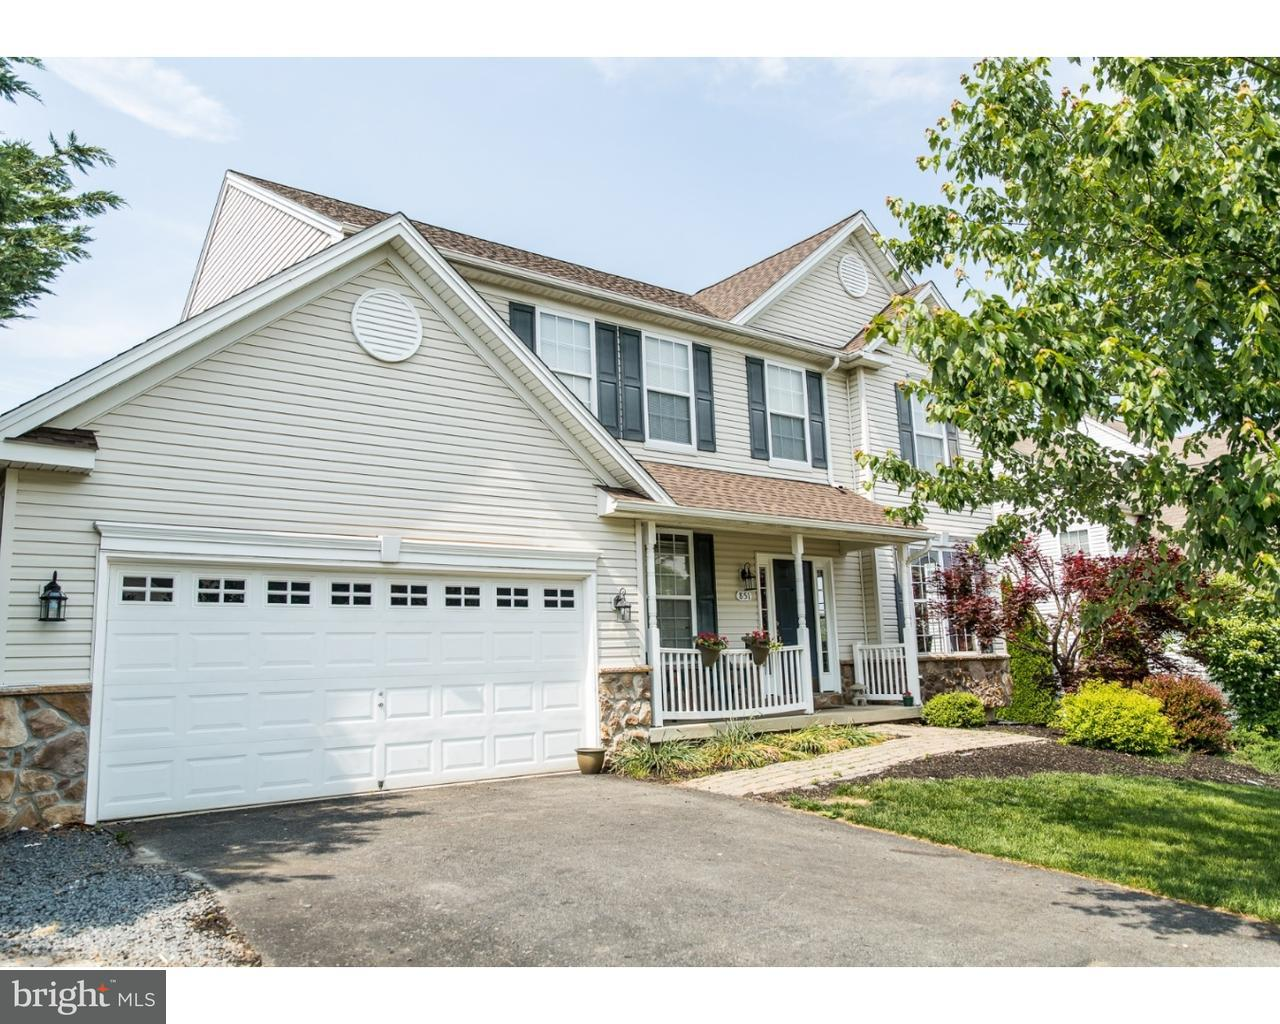 851 FRANKLIN ST, VALLEY TOWNSHIP - Listed at $299,900, VALLEY TOWNSHIP